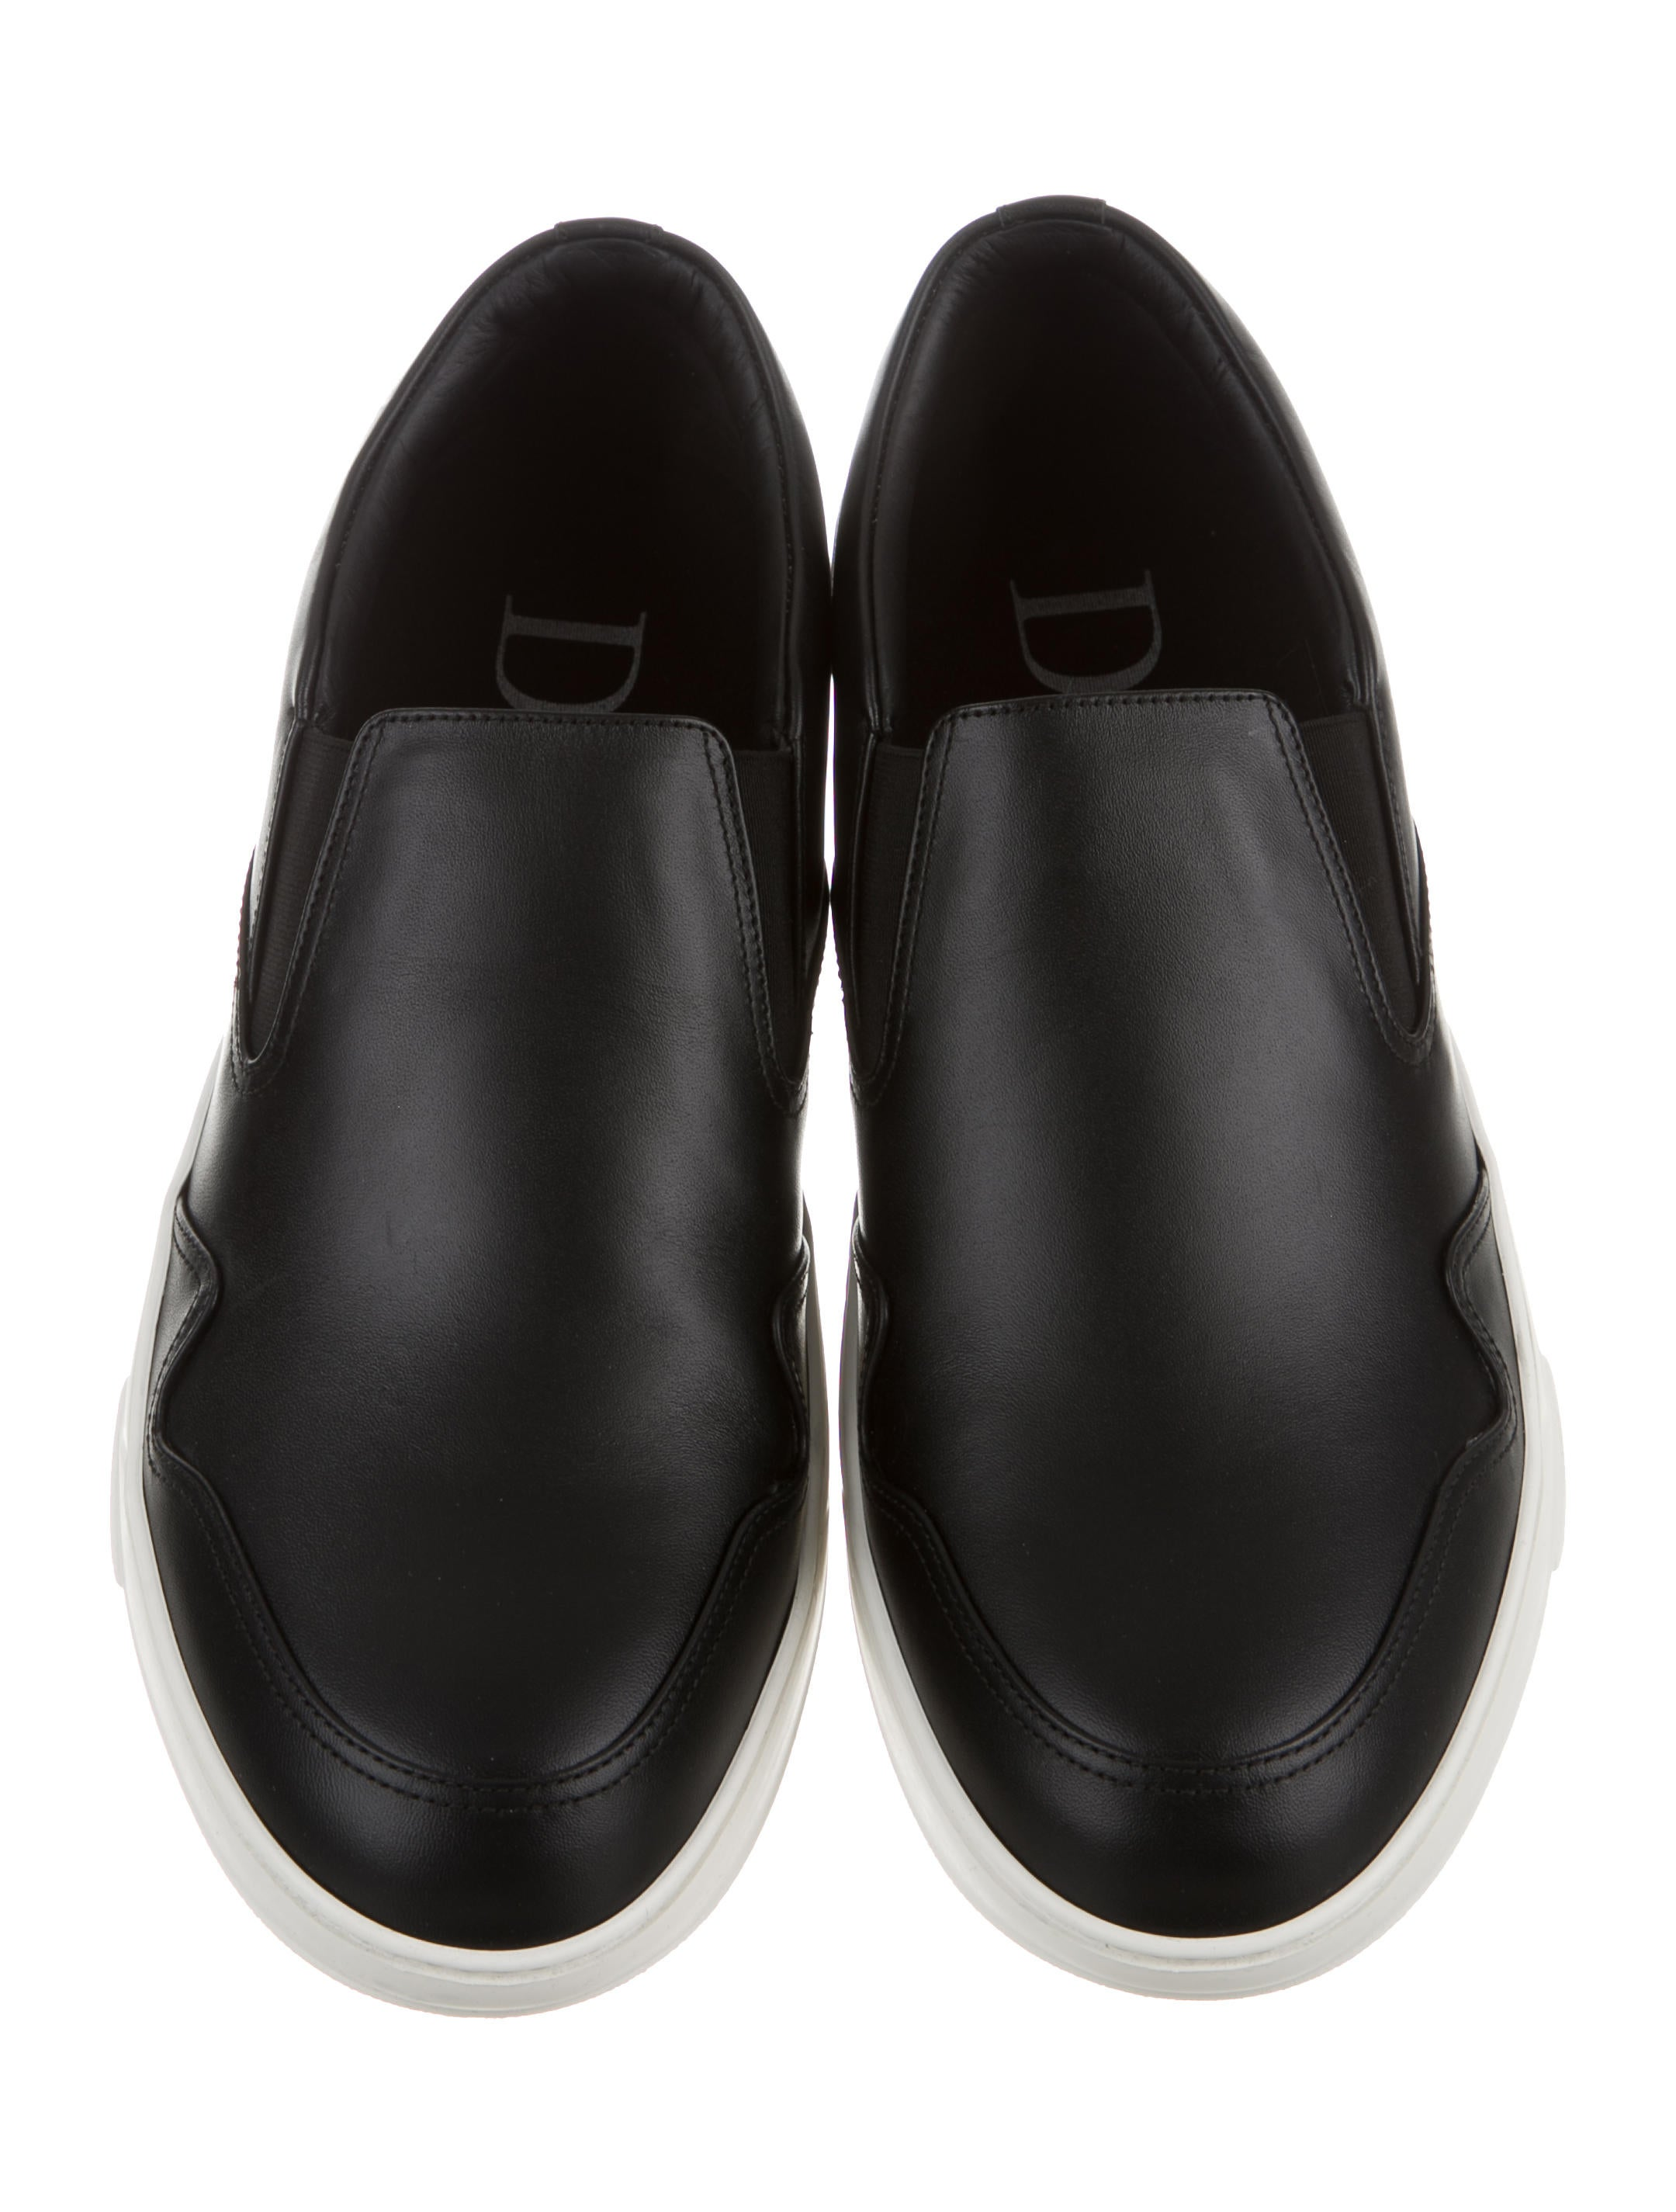 dior homme leather slip on sneakers shoes hmm23012 the realreal. Black Bedroom Furniture Sets. Home Design Ideas